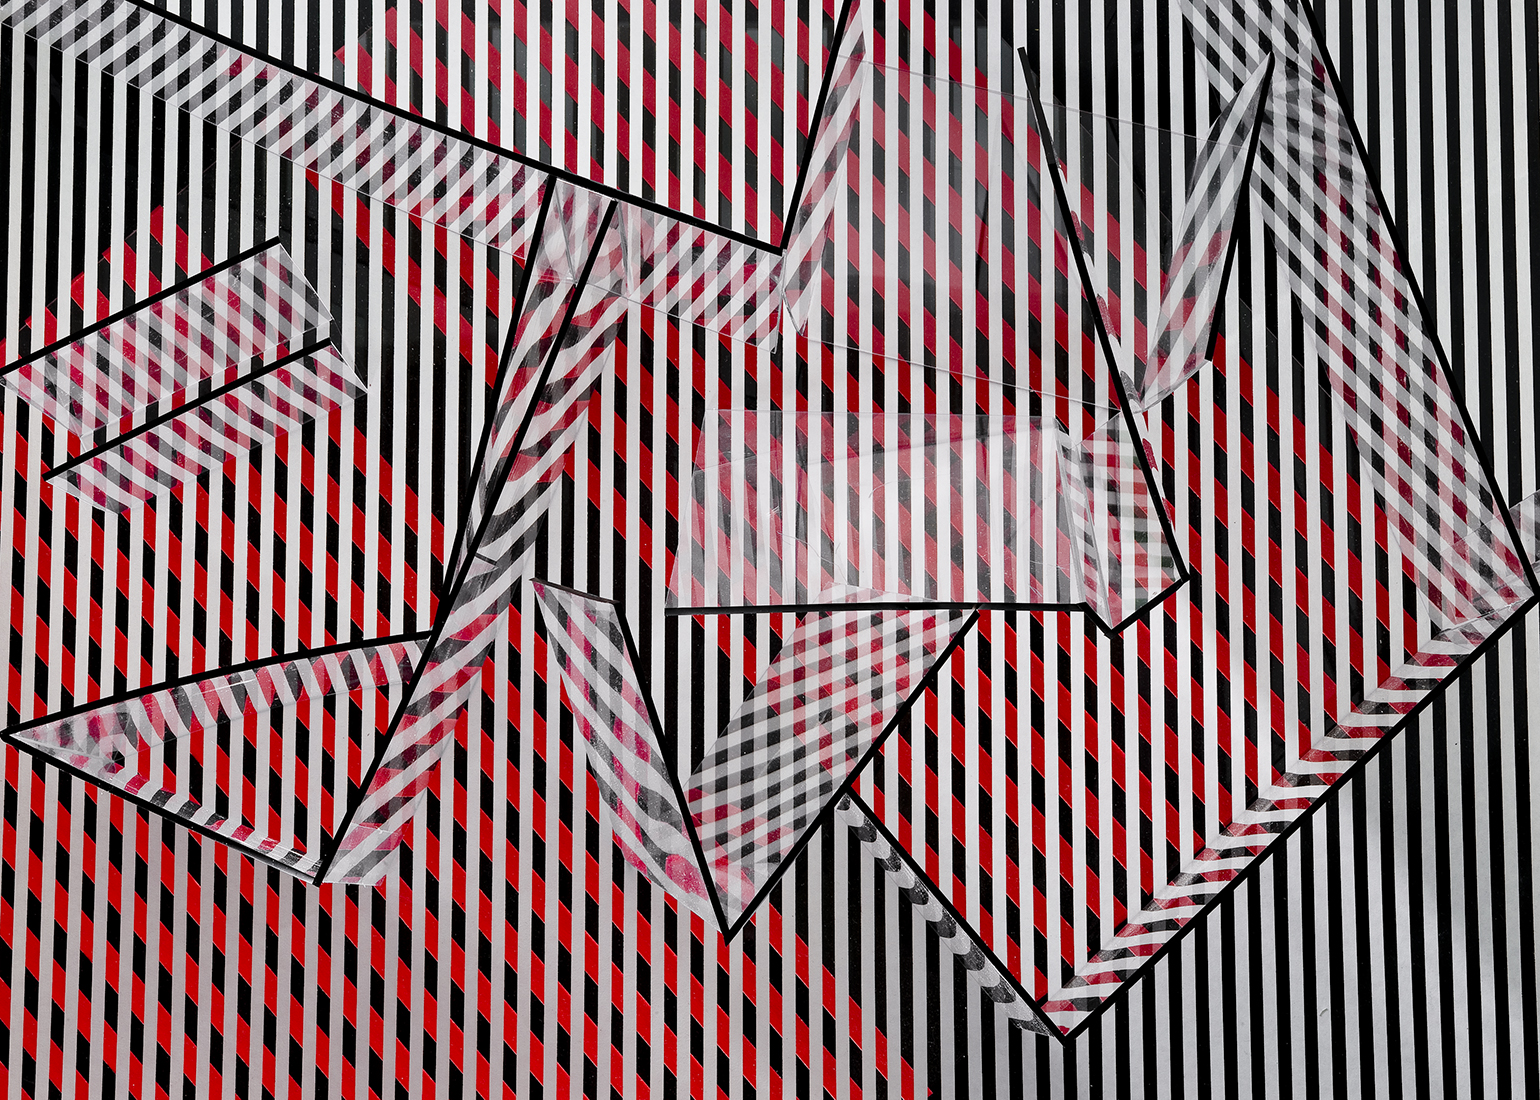 untitled (red, white, & black / no.1)  , 2012  8 x 10 inches archival pigment print © Brent Wahl